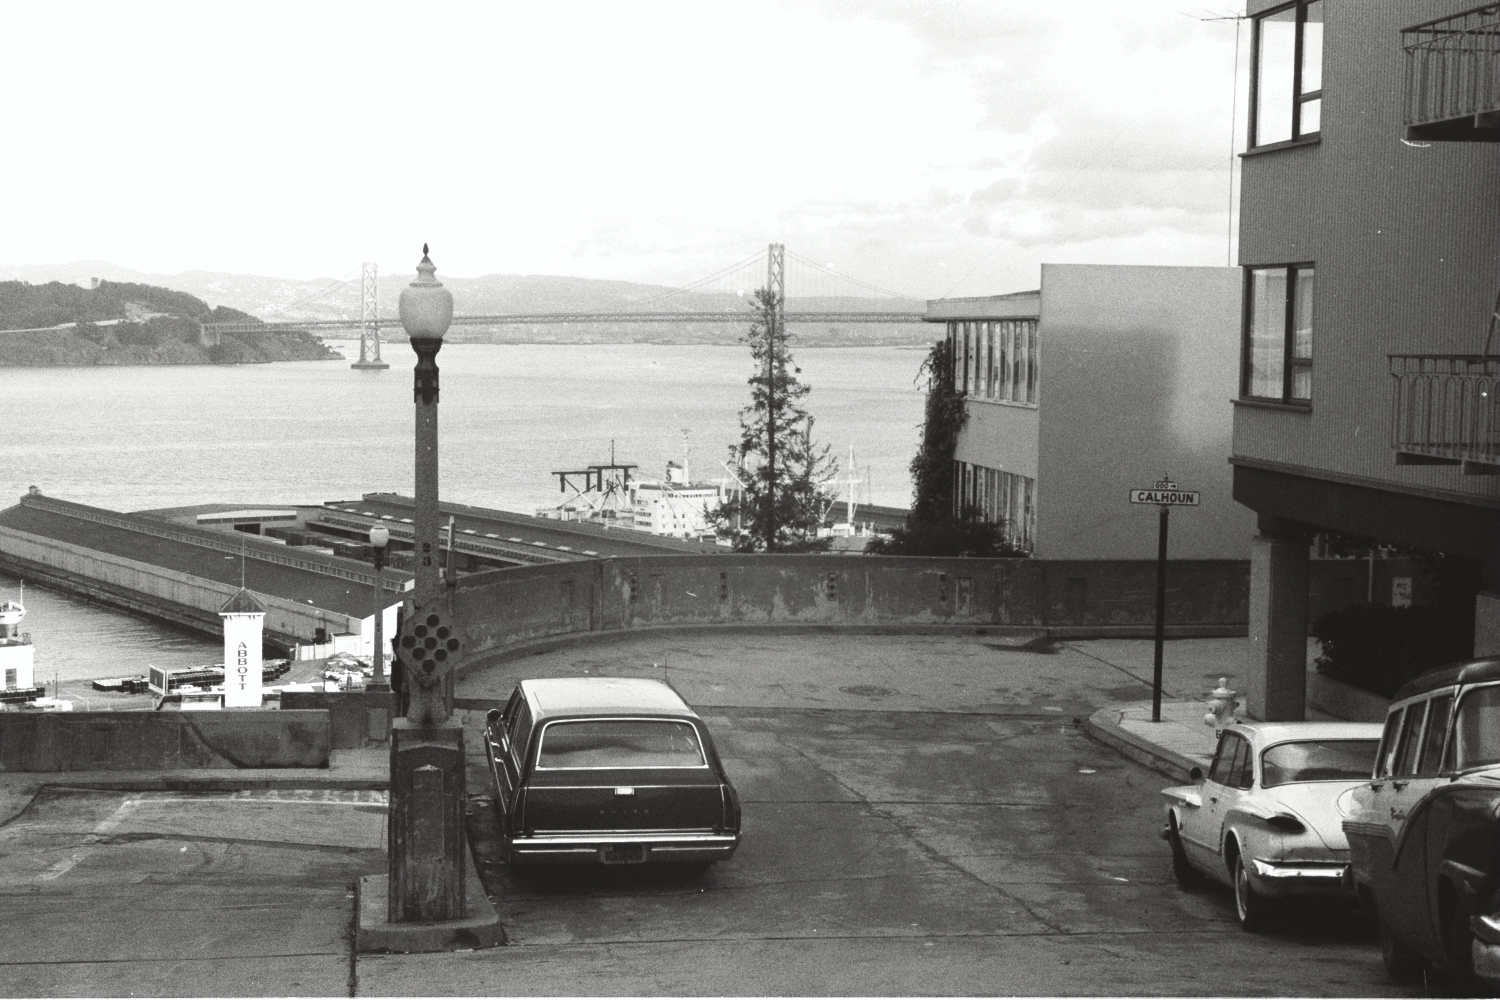 View of the Bay Bridge, San Francisco, late 1960s